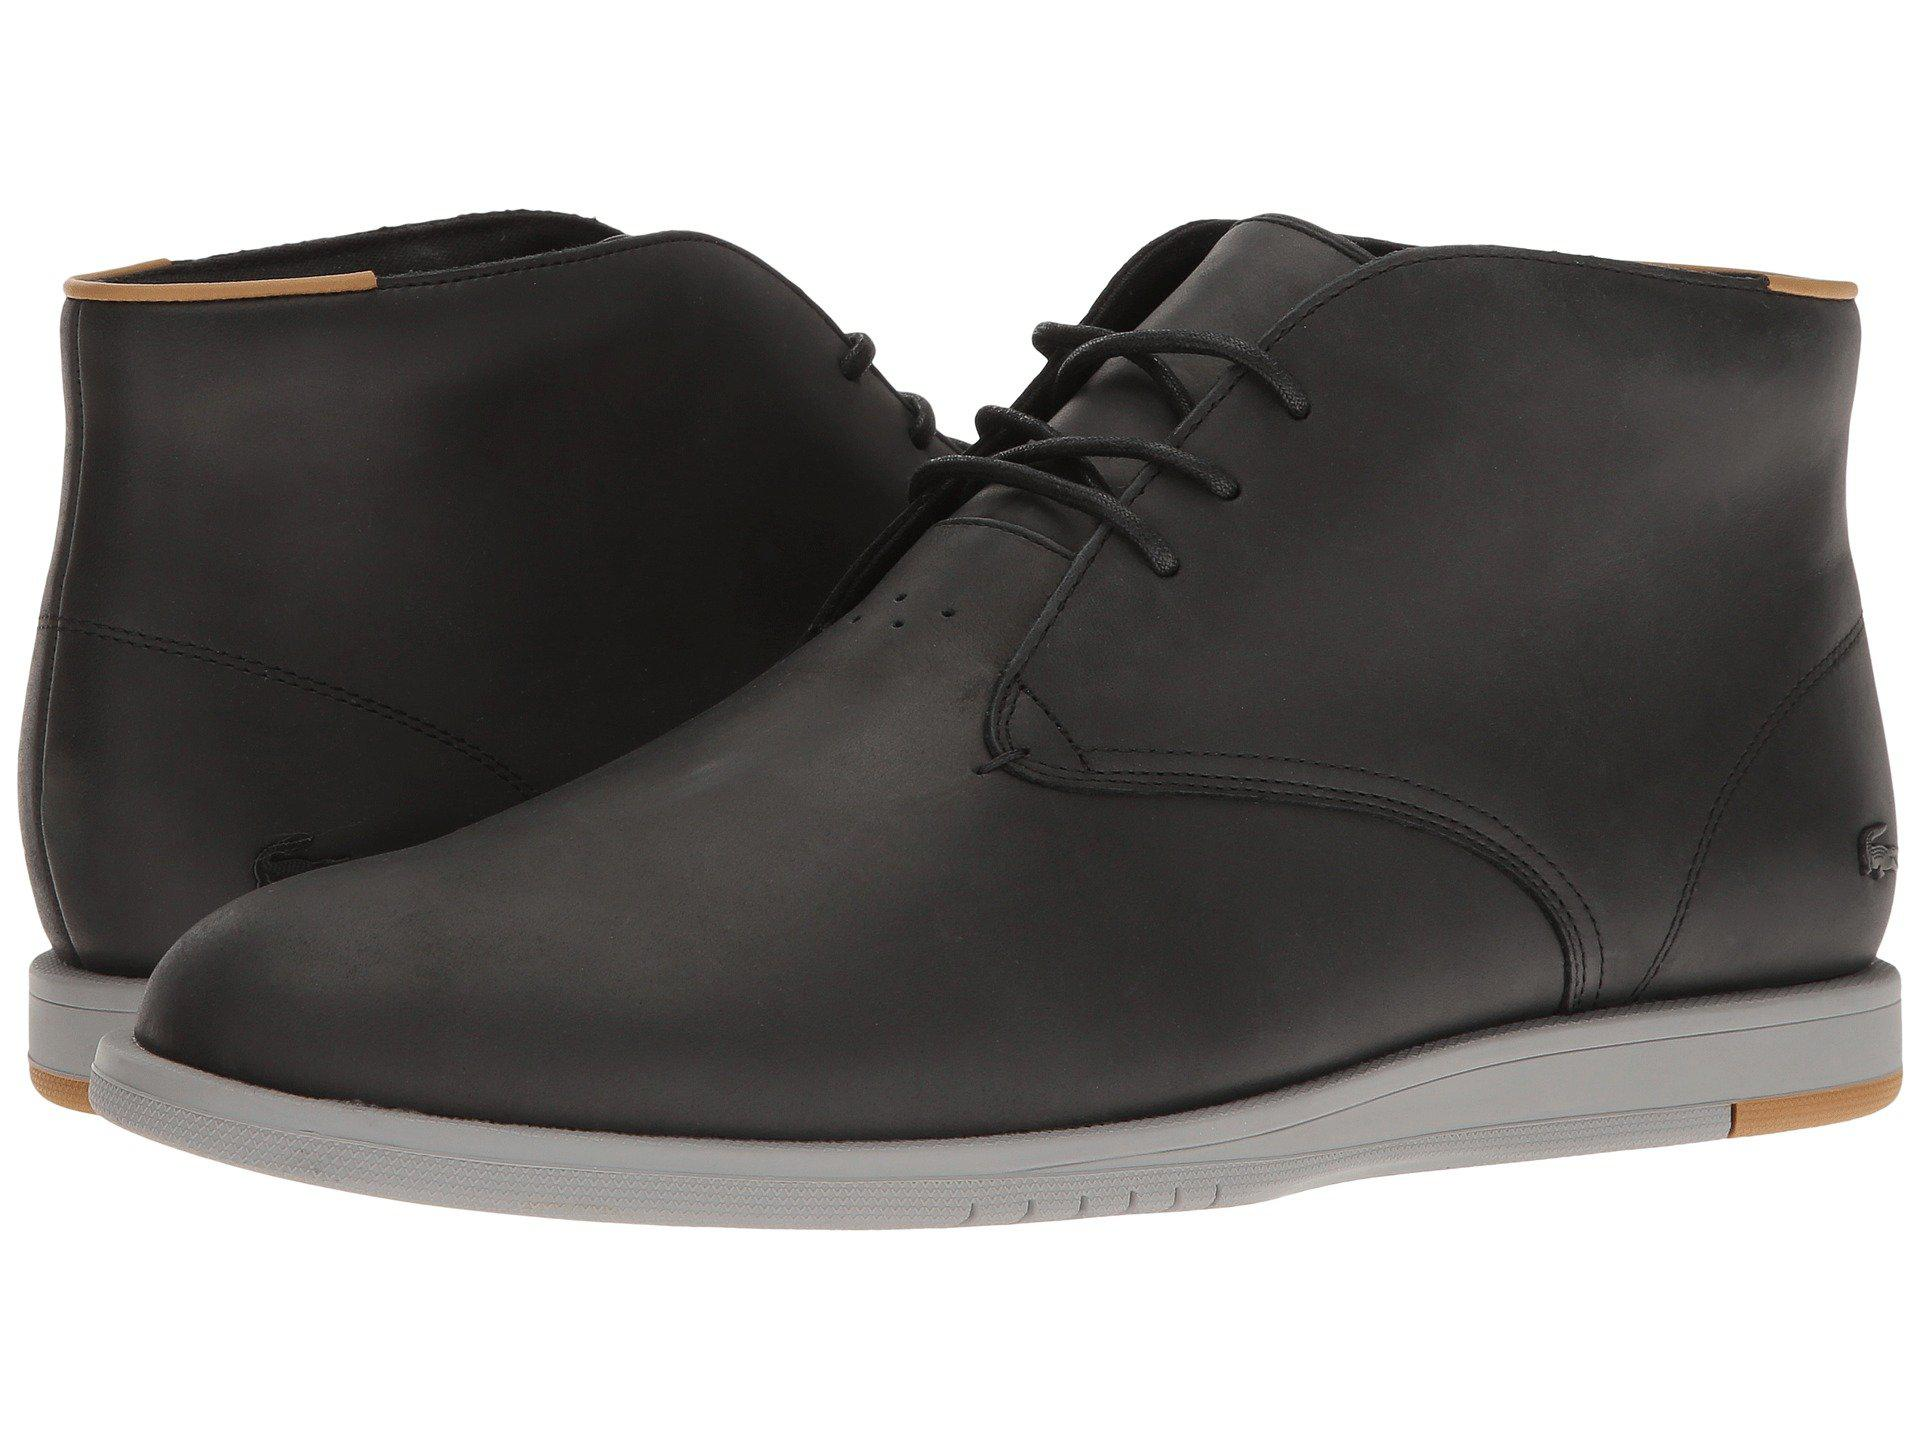 05c7a4d3707e Lyst - Lacoste Laccord Chukka 117 1 Cam in Black for Men